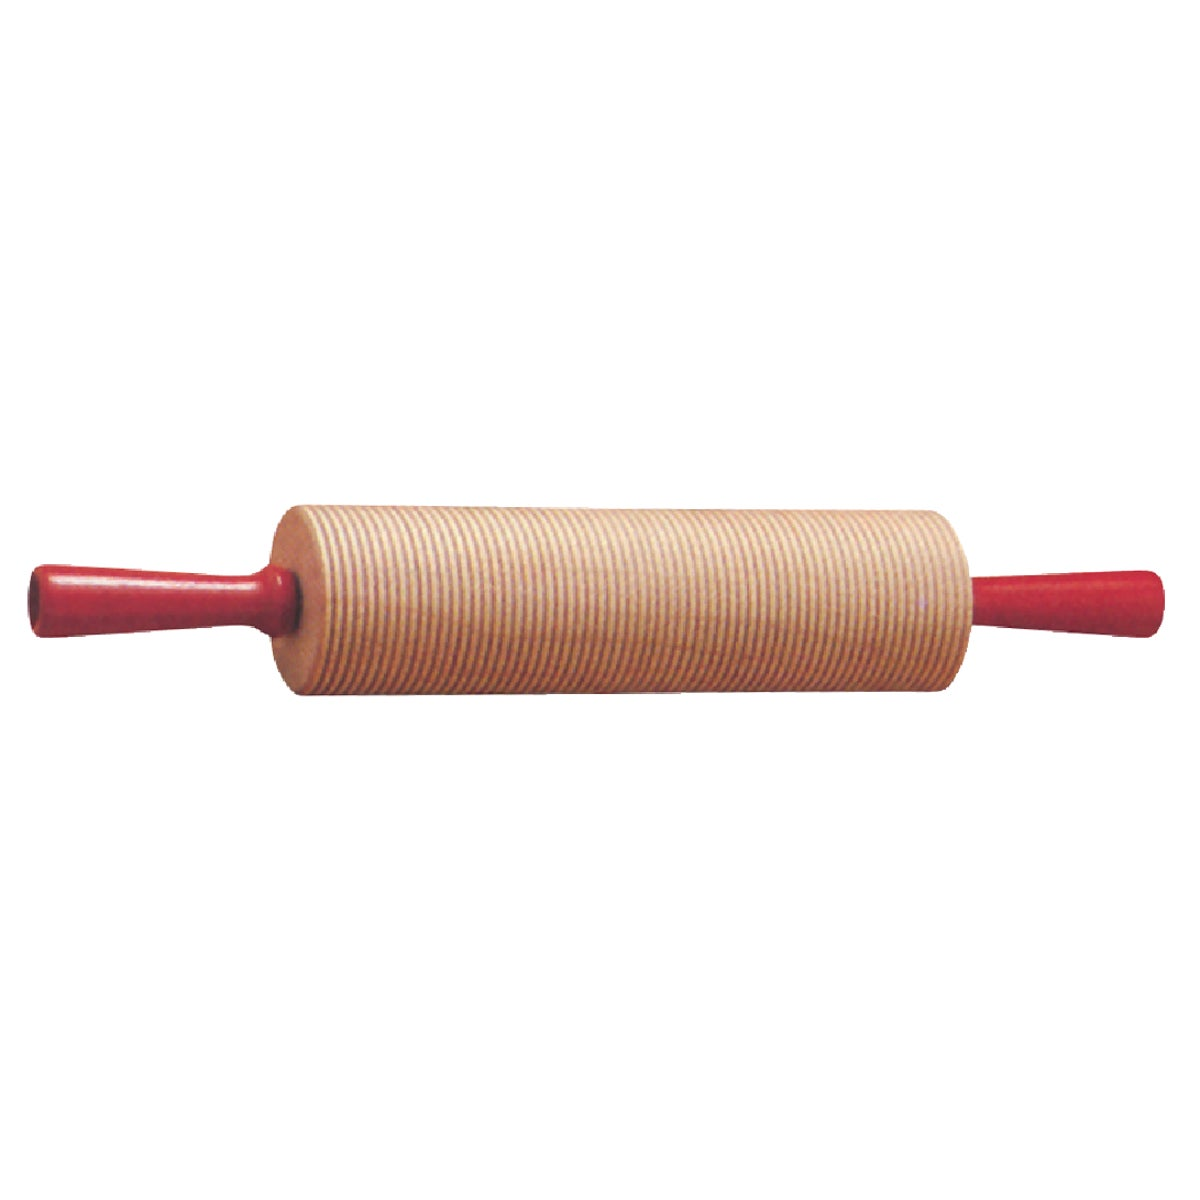 CORRUGATED ROLLING PIN - 420 by Bethany Housewares